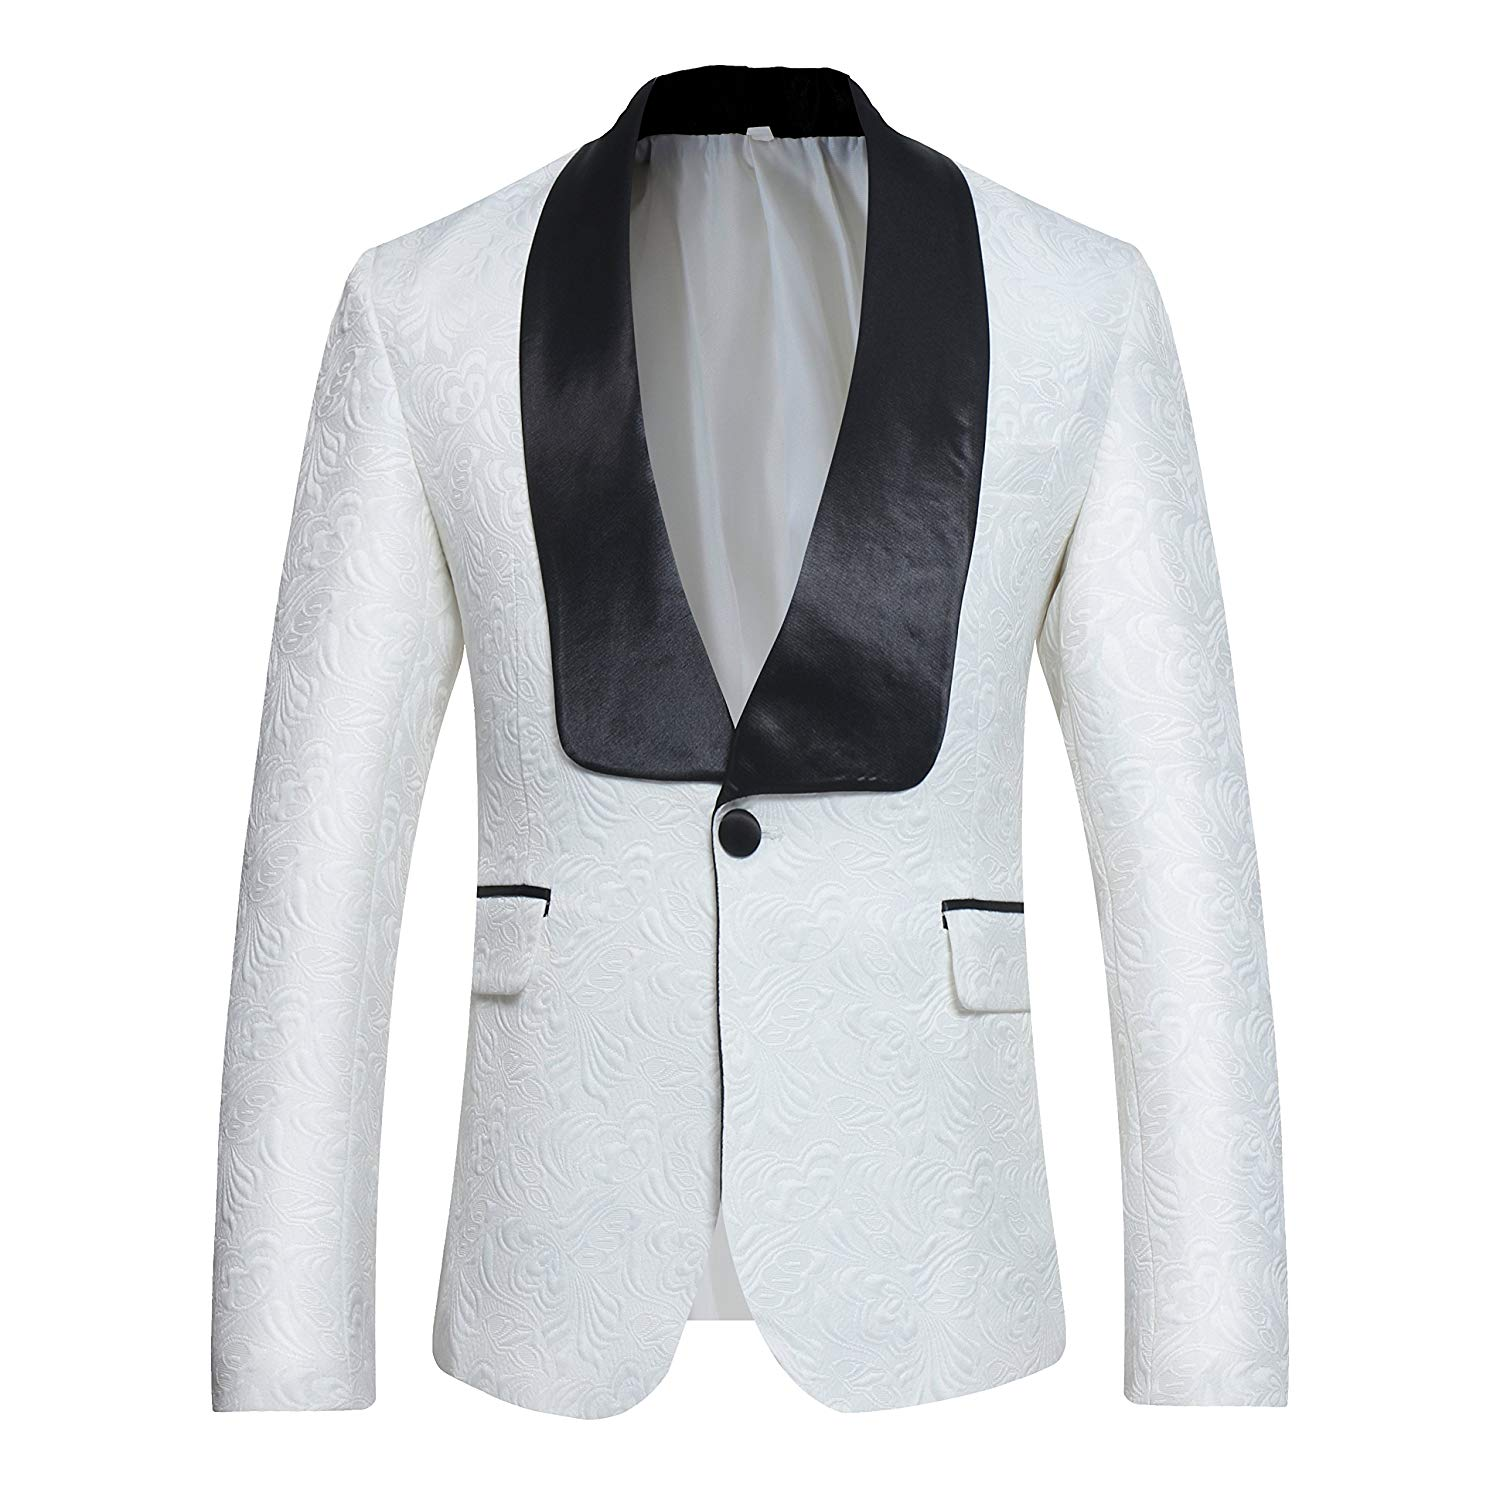 00ca6f05edf3 Get Quotations · Cloudstyle Mens Tuxedo Classic Blazer Patterned One Button  Prom Dinner Suit Jacket Sports Coat